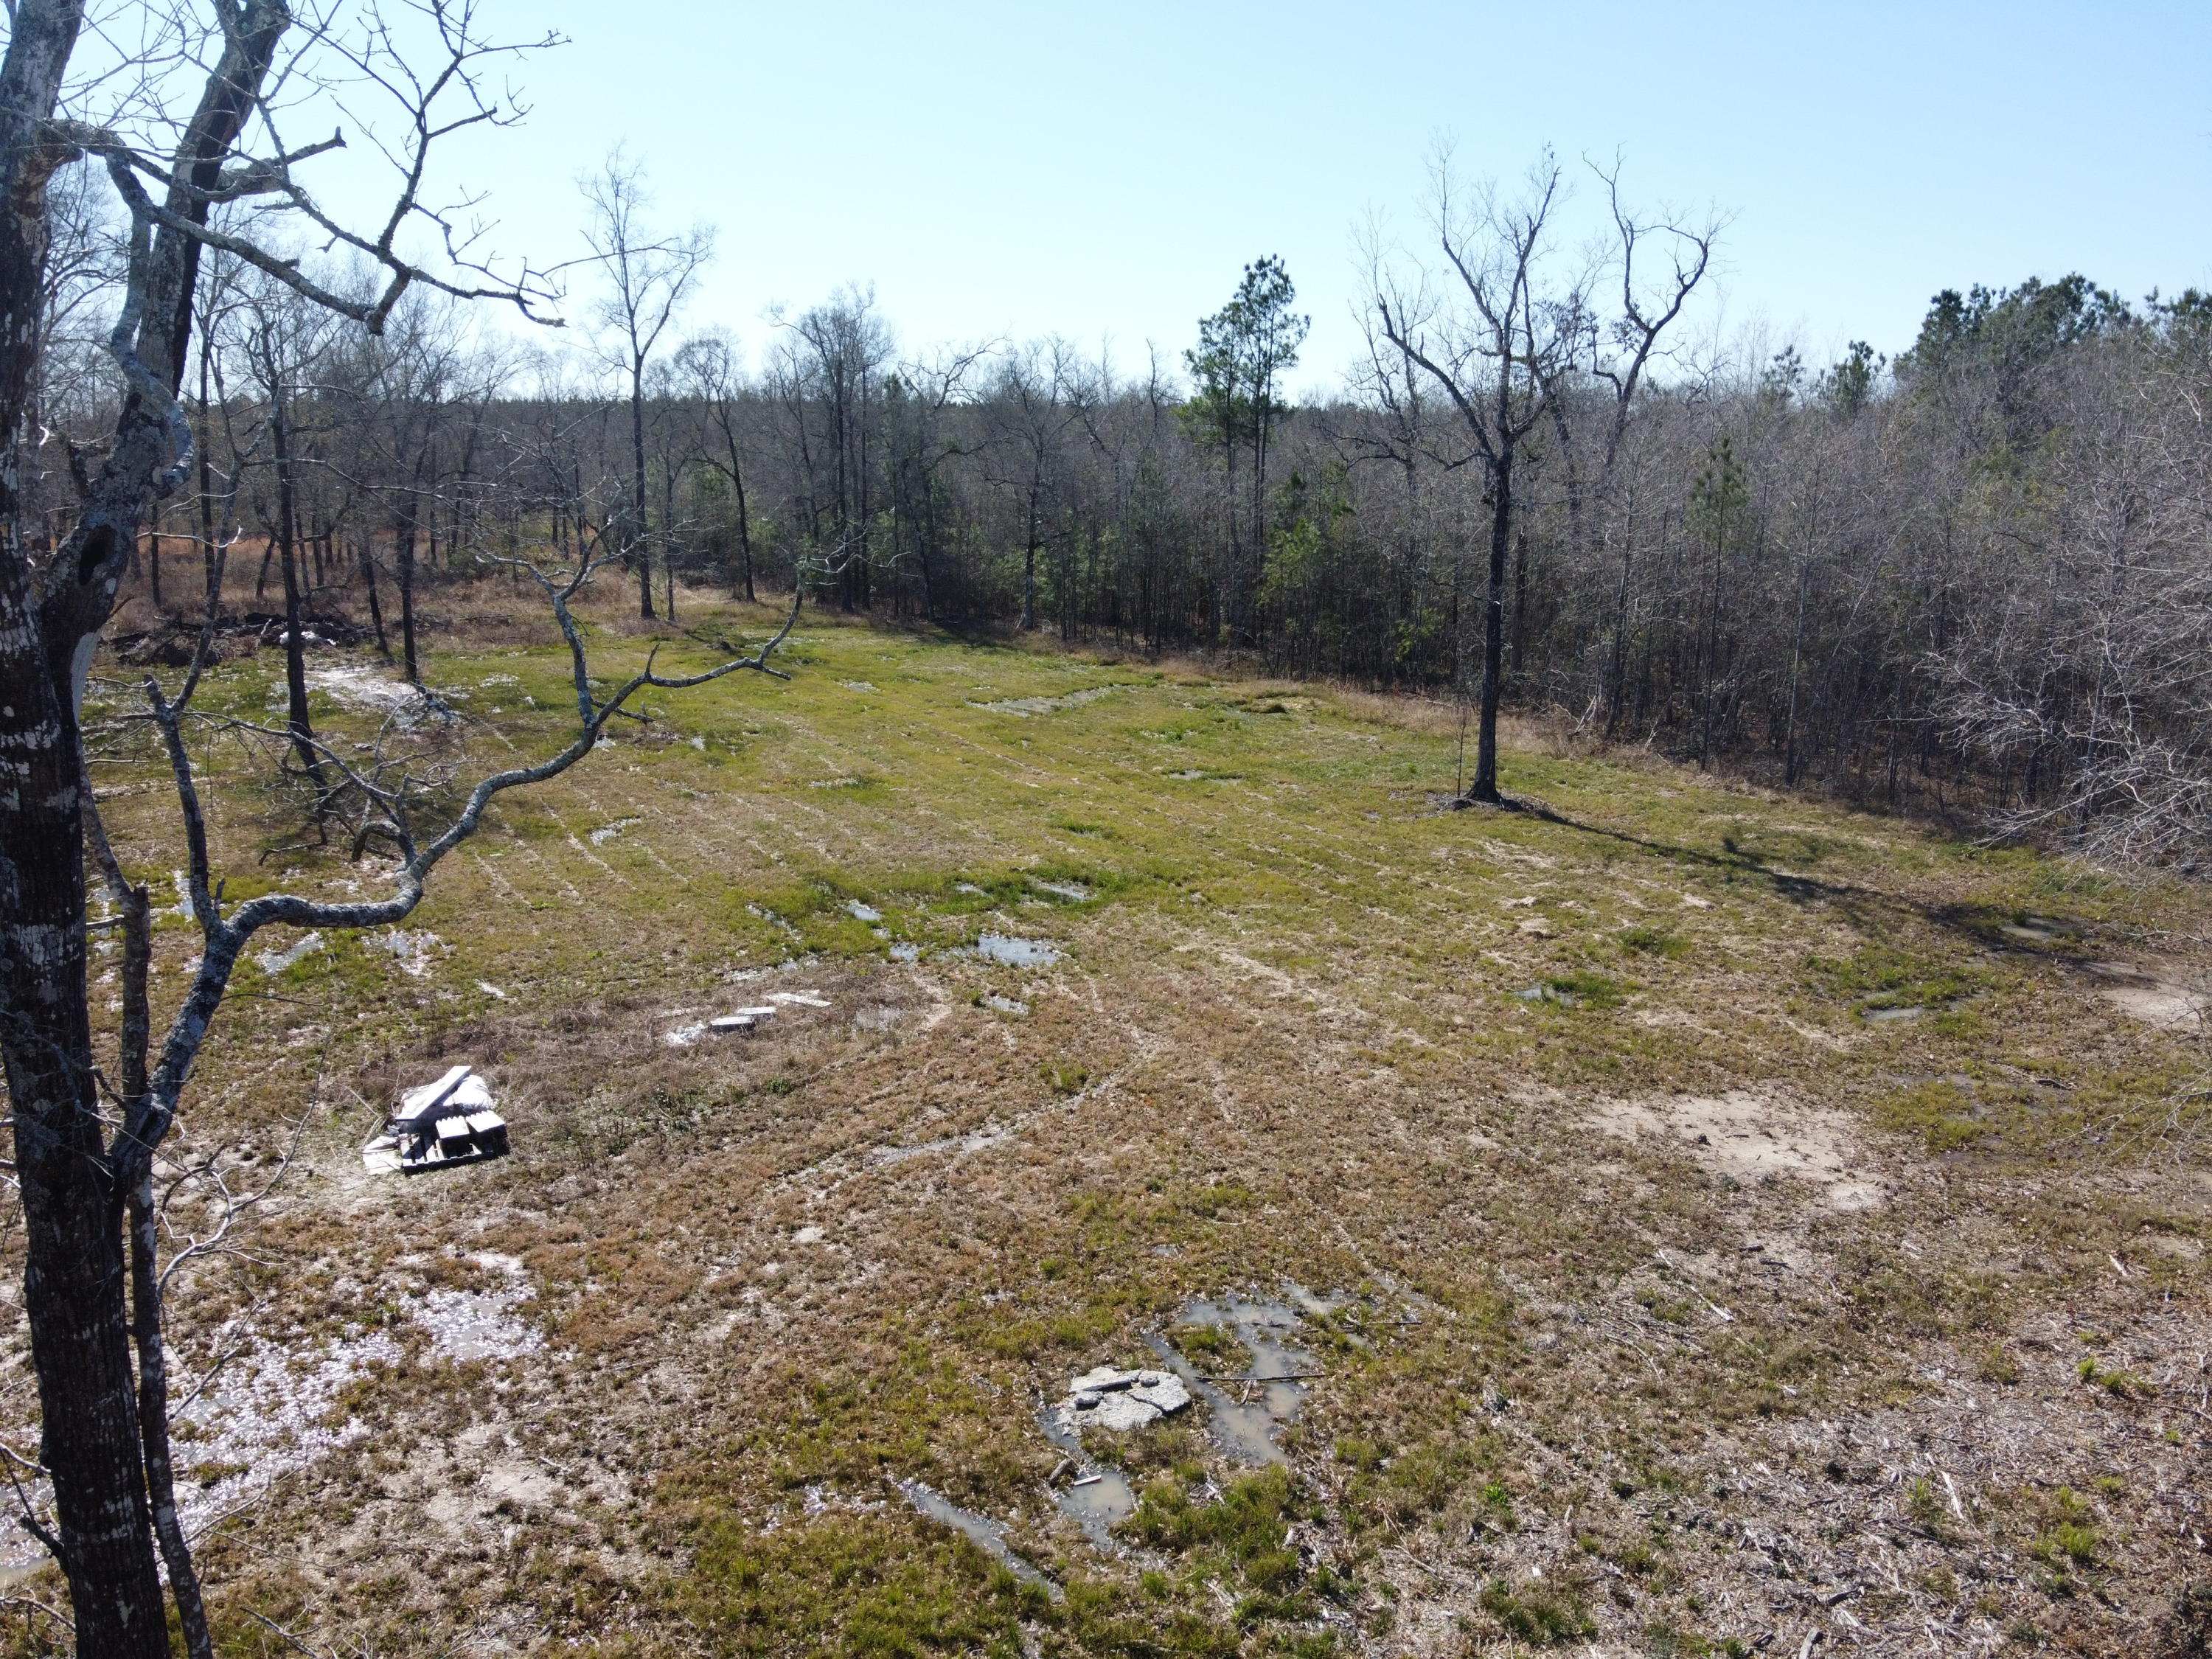 Kinder land for sale,  229 OLD PUMP RD  LOT 1, Kinder LA - $24,000